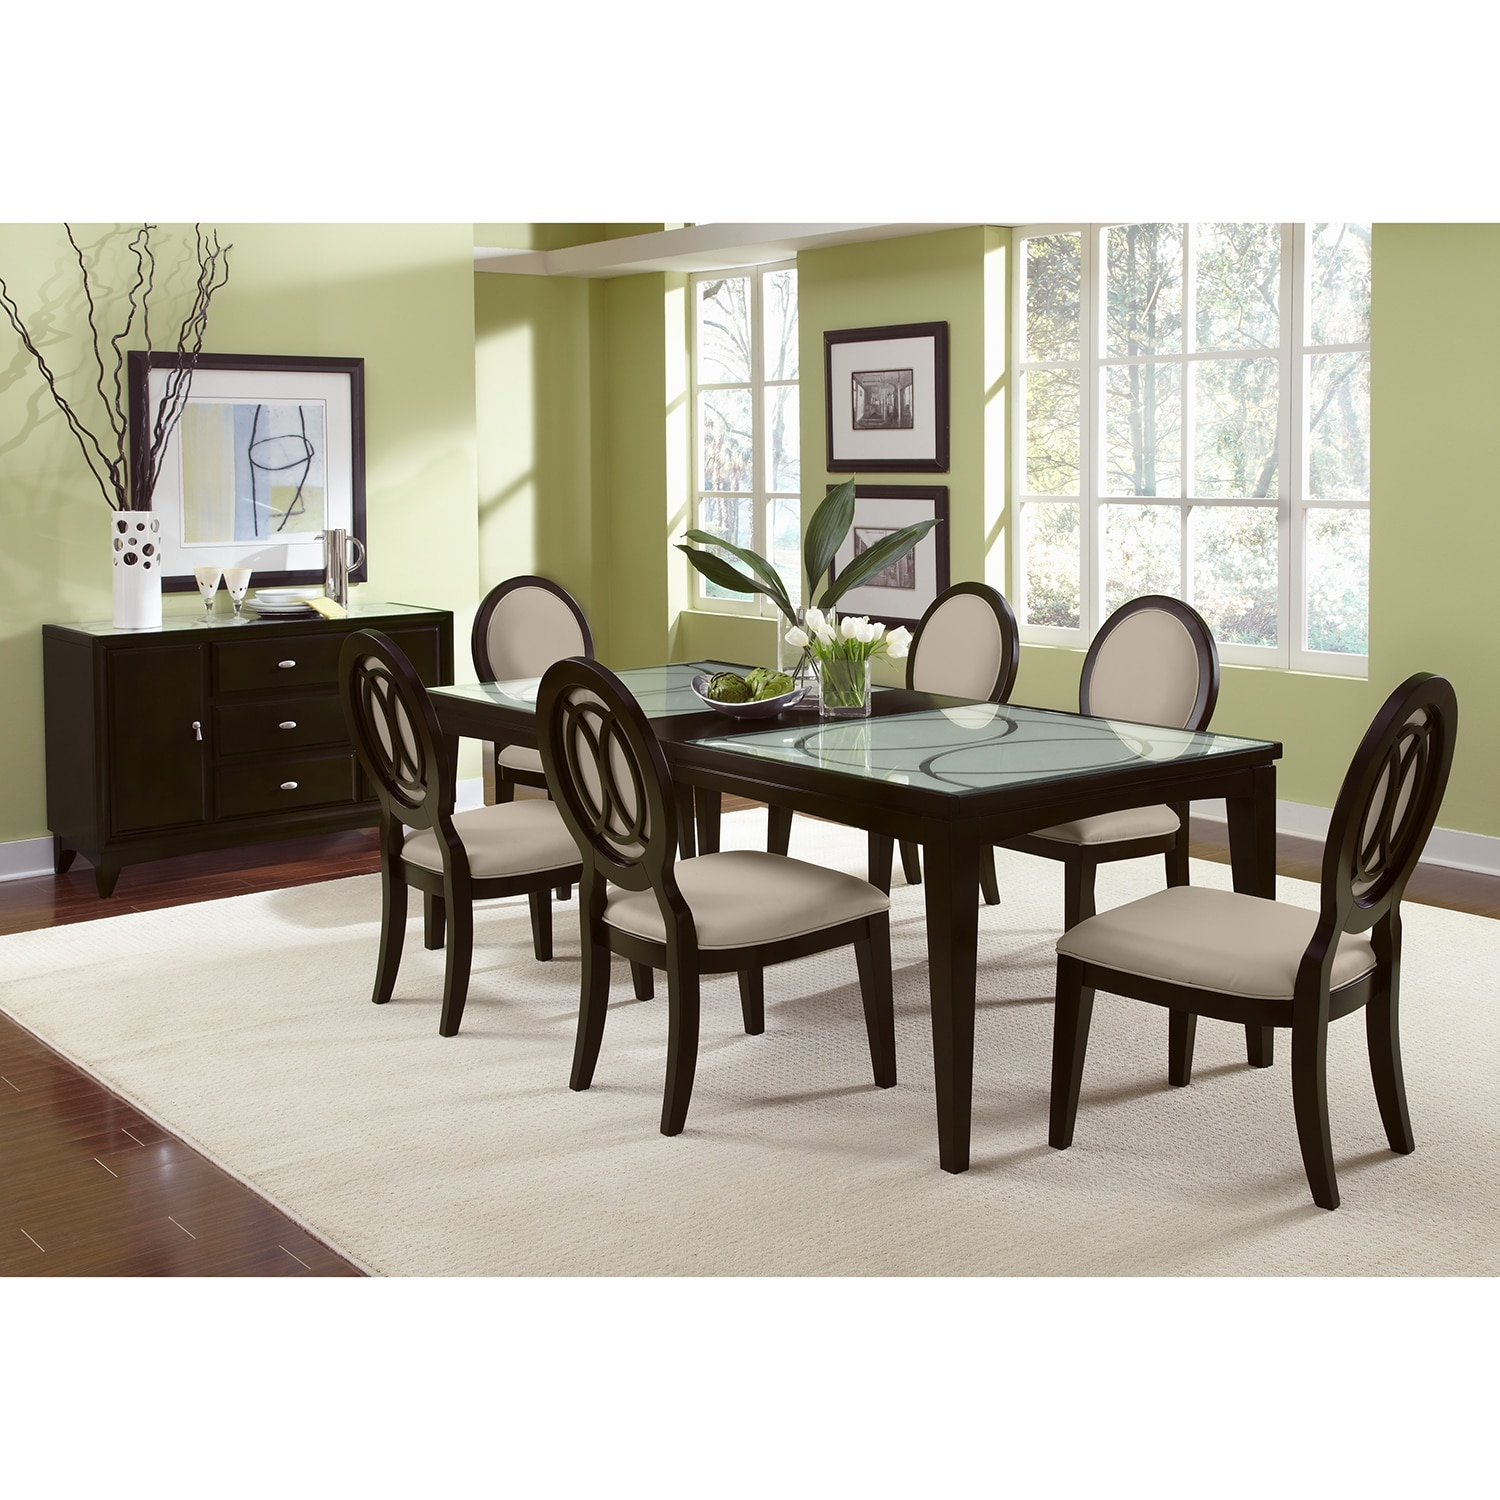 Dining room furniture cosmo table and 6 chairs merlot